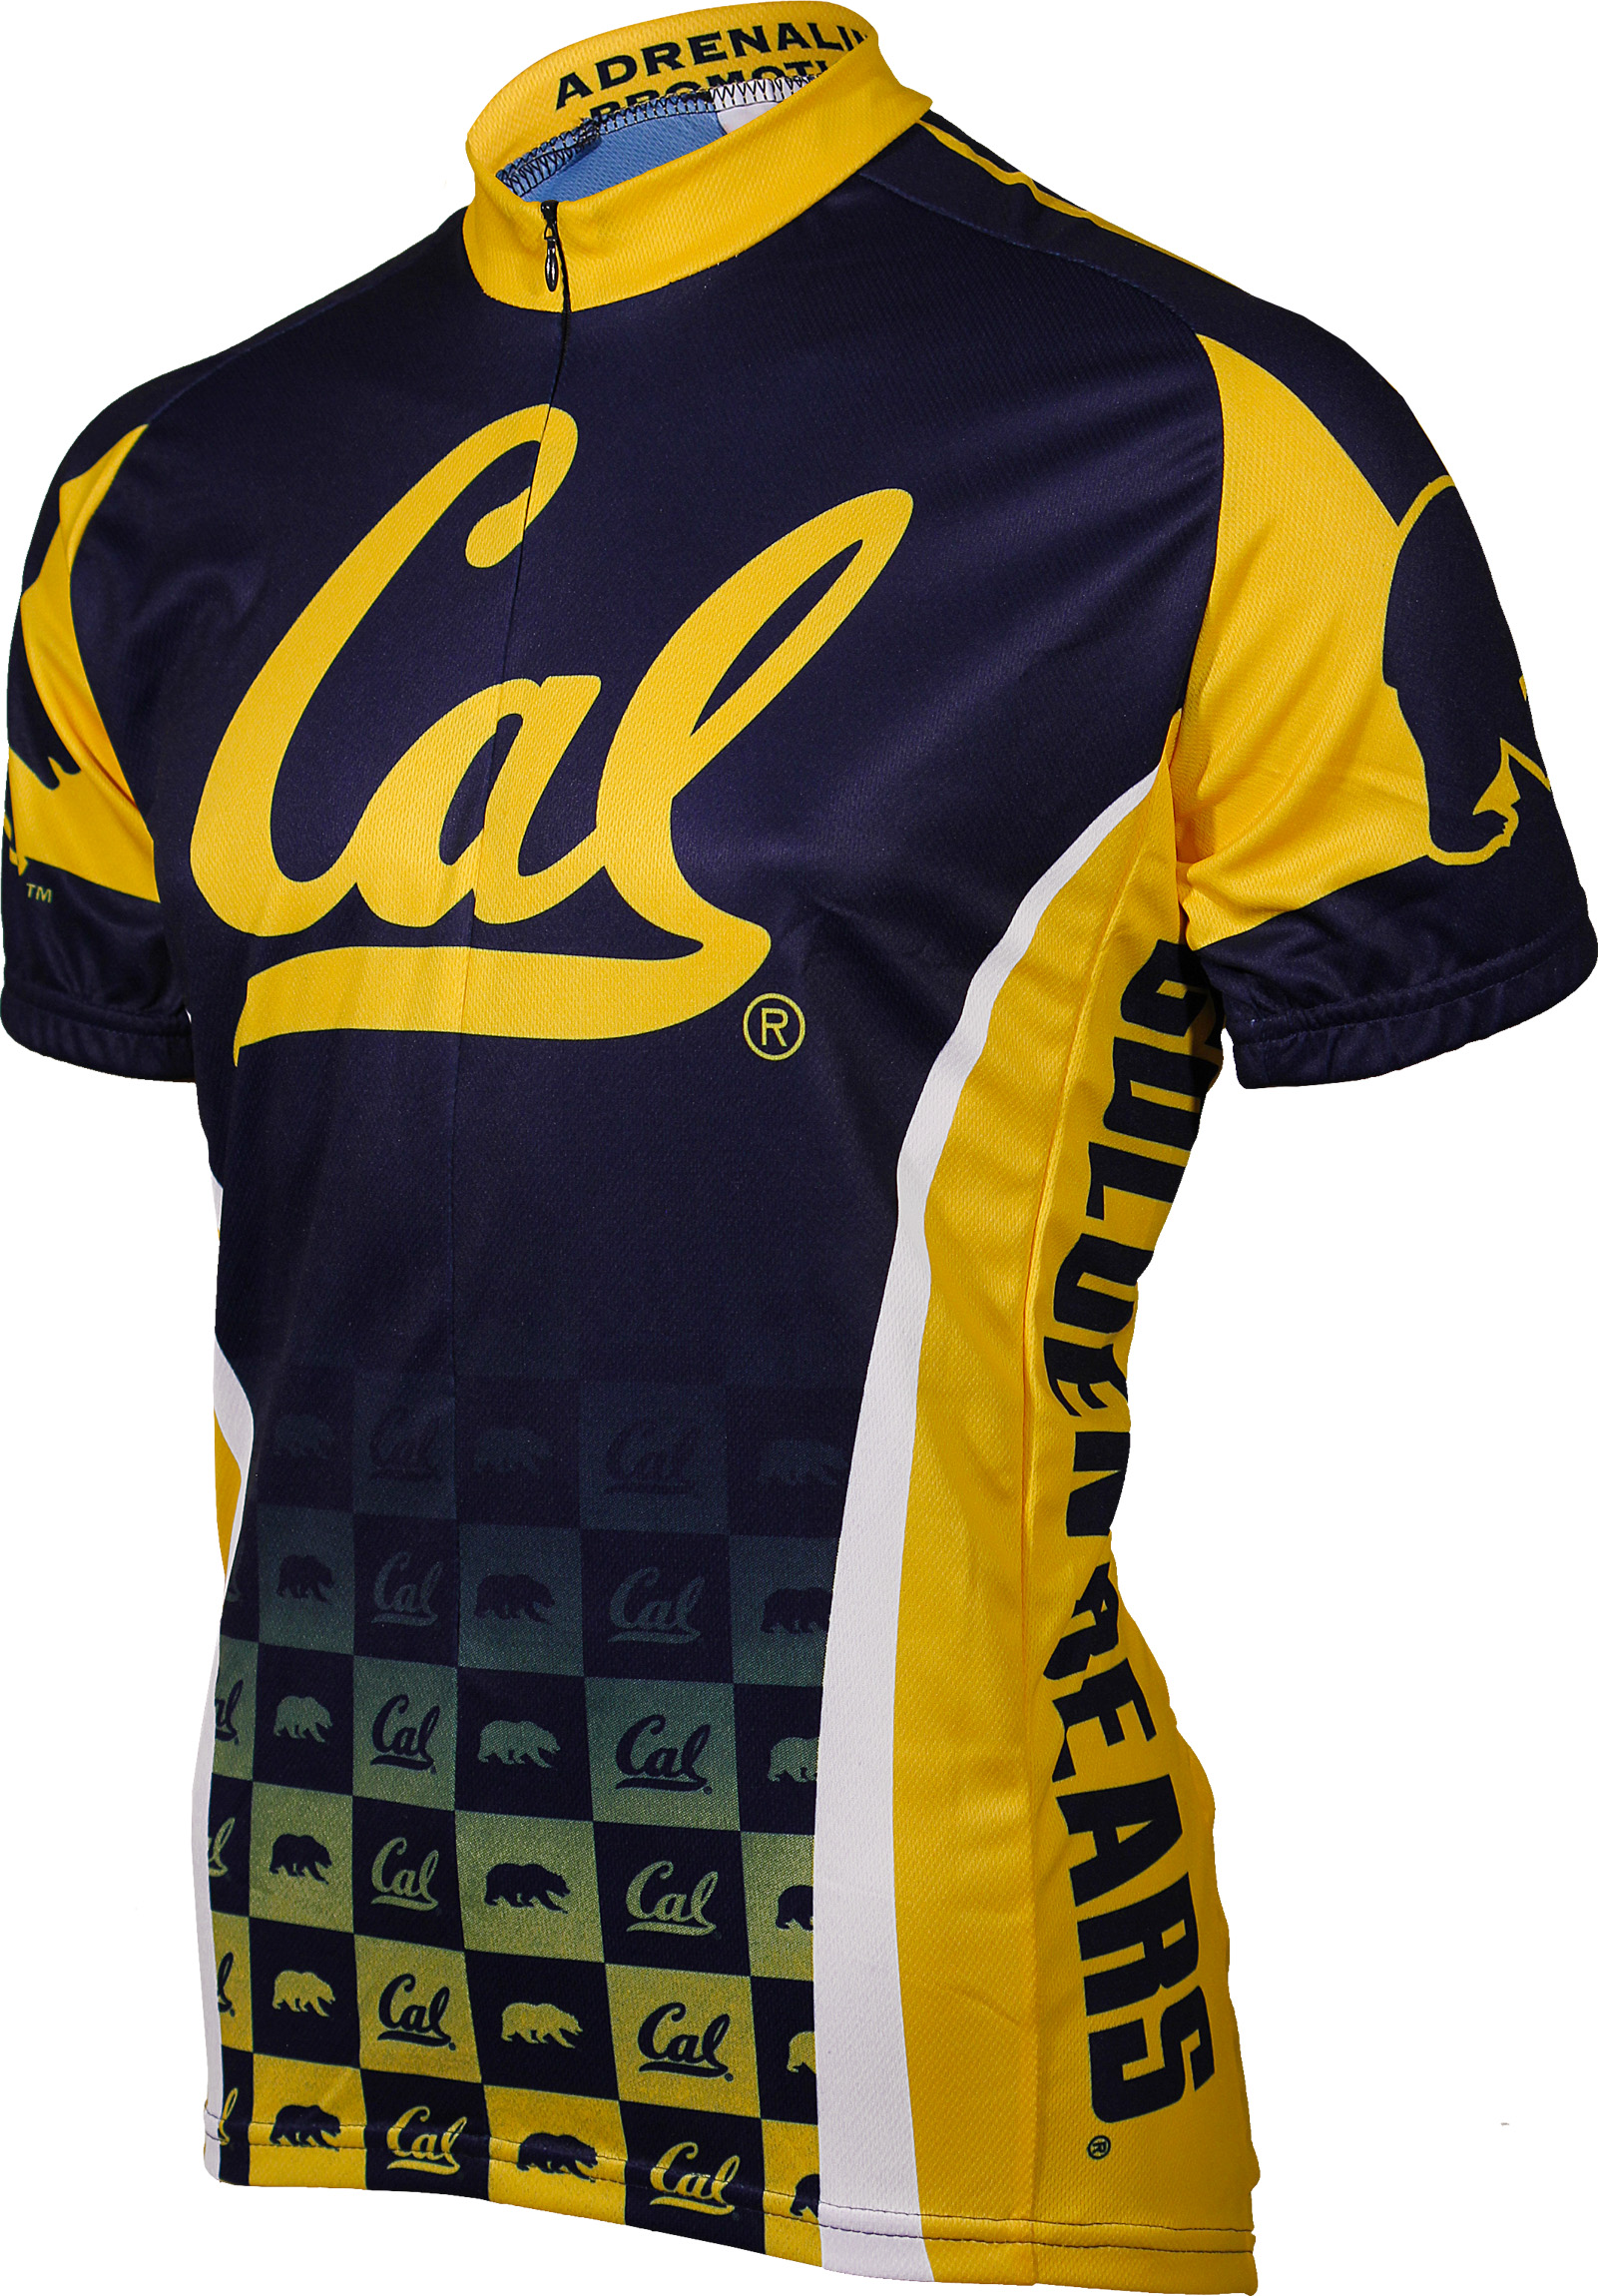 University of California Berkeley Golden Bears Cycling Jersey